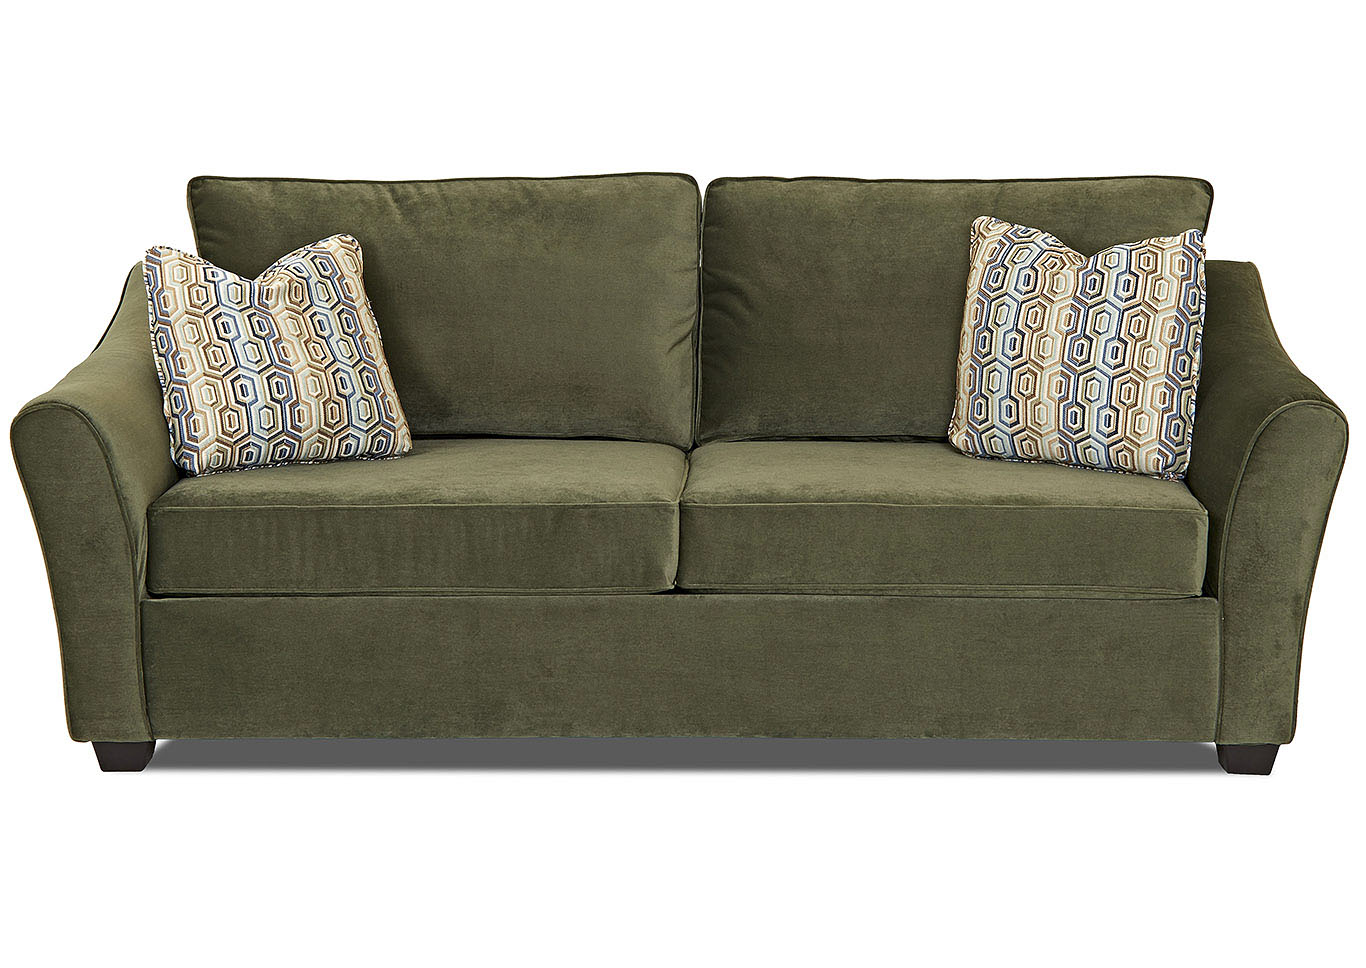 Just Furniture Linville Moss Green Stationary Fabric Sofa